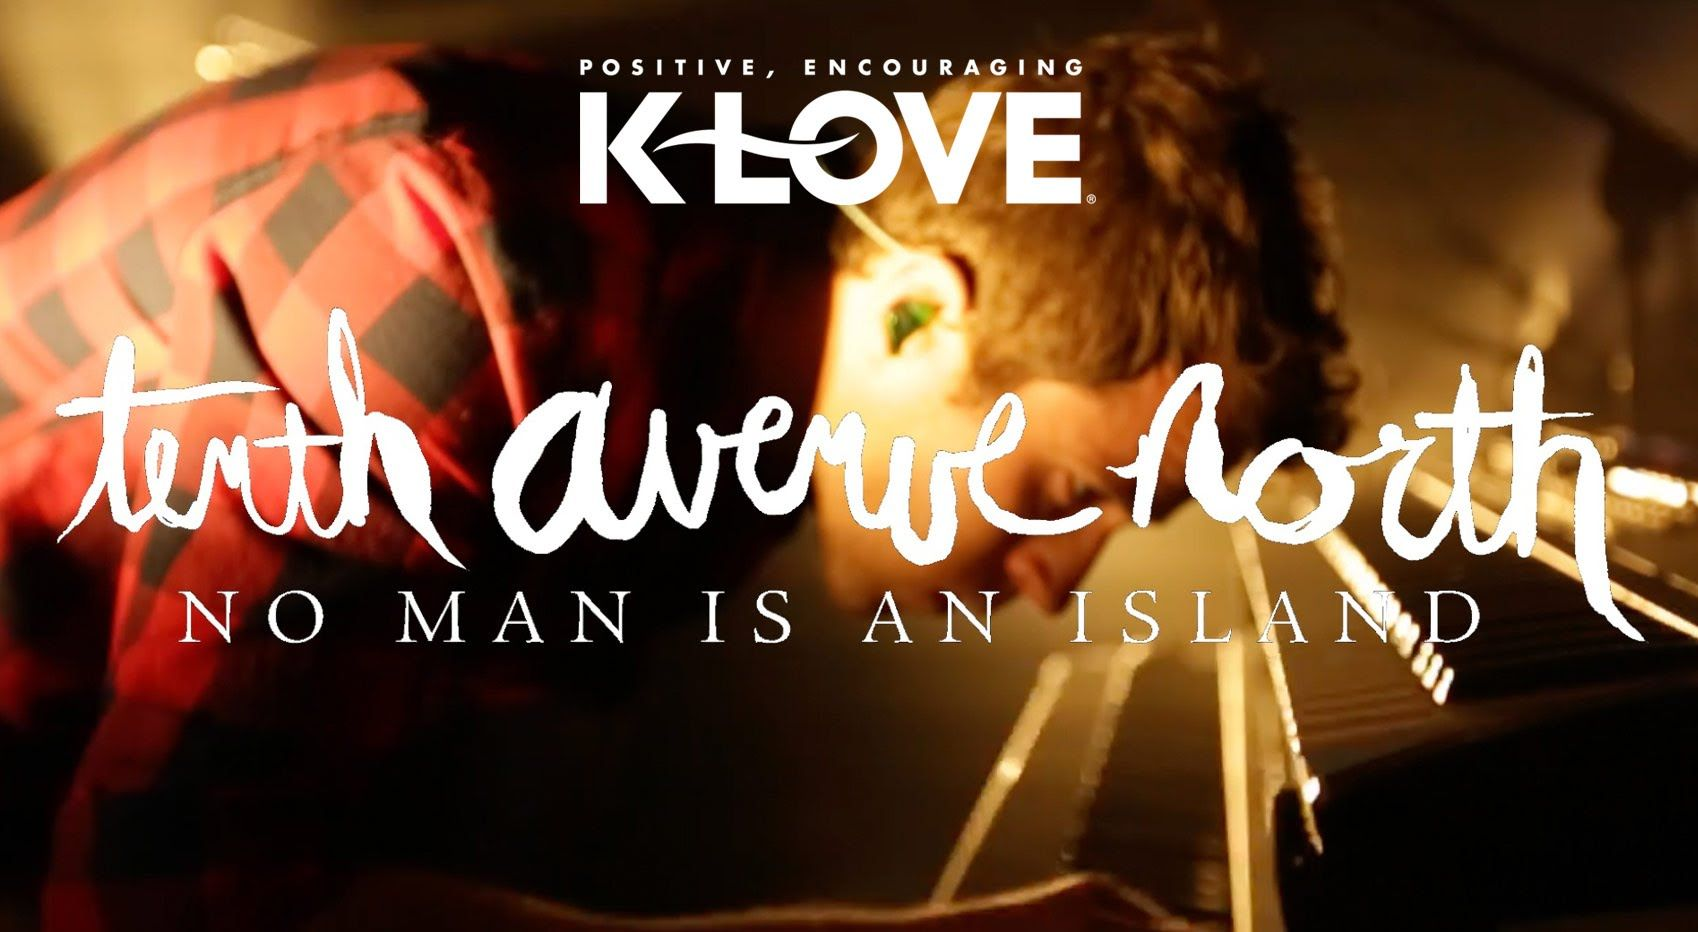 Tenth Avenue North No Man Is An Island Youtube videos